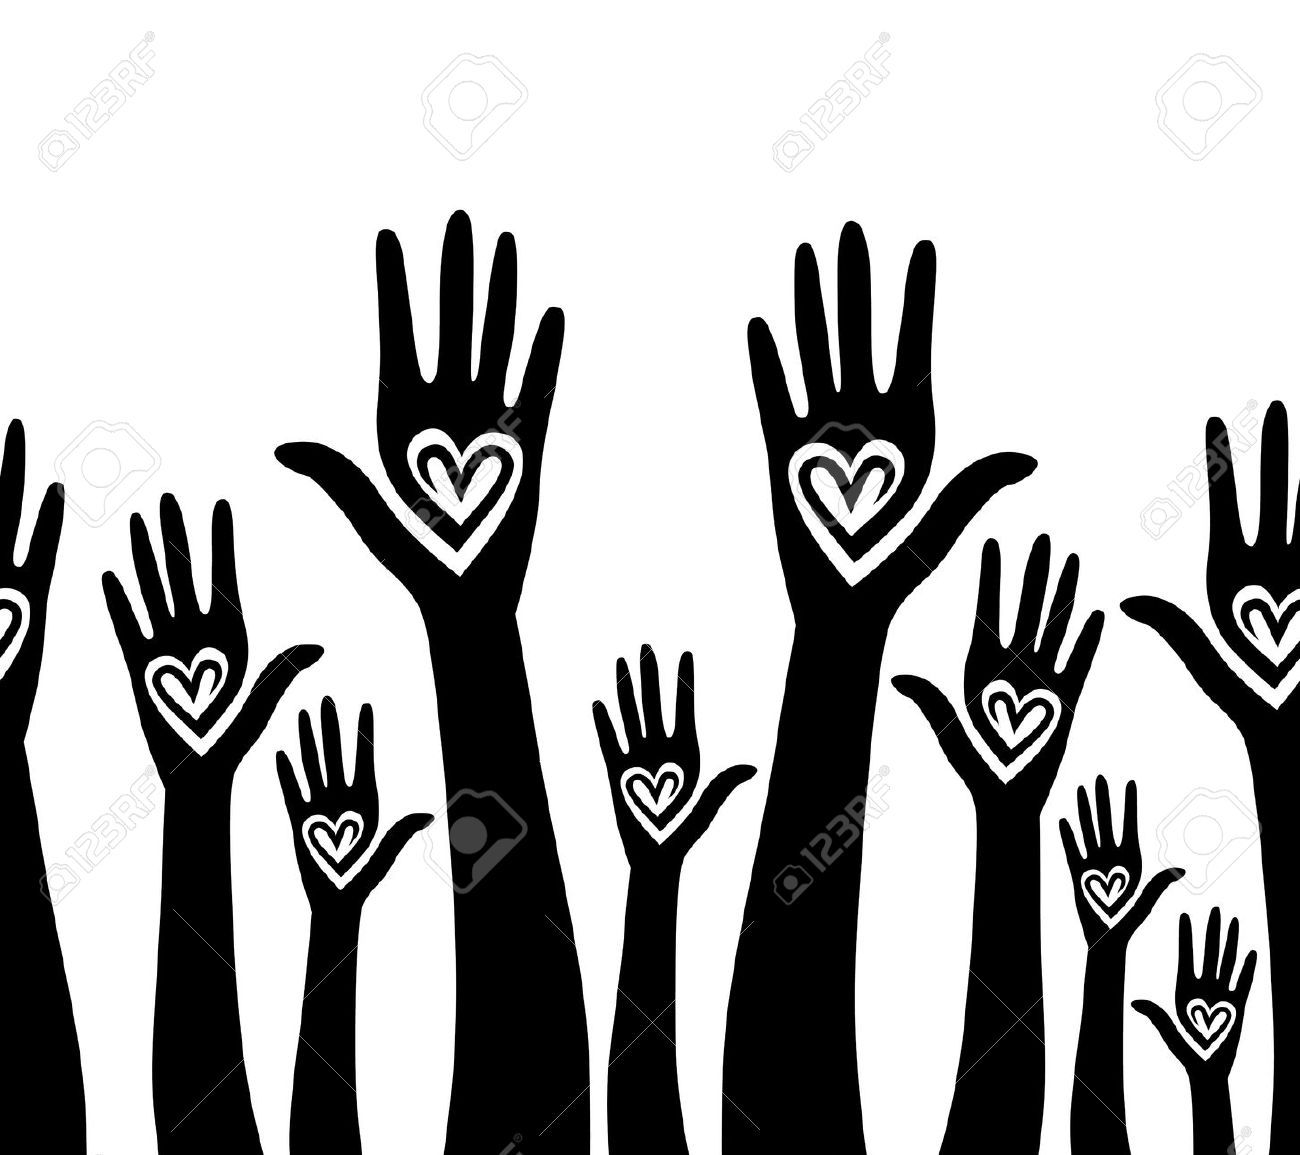 small resolution of colorful hands with hearts over white background royalty free hand clipart seamless